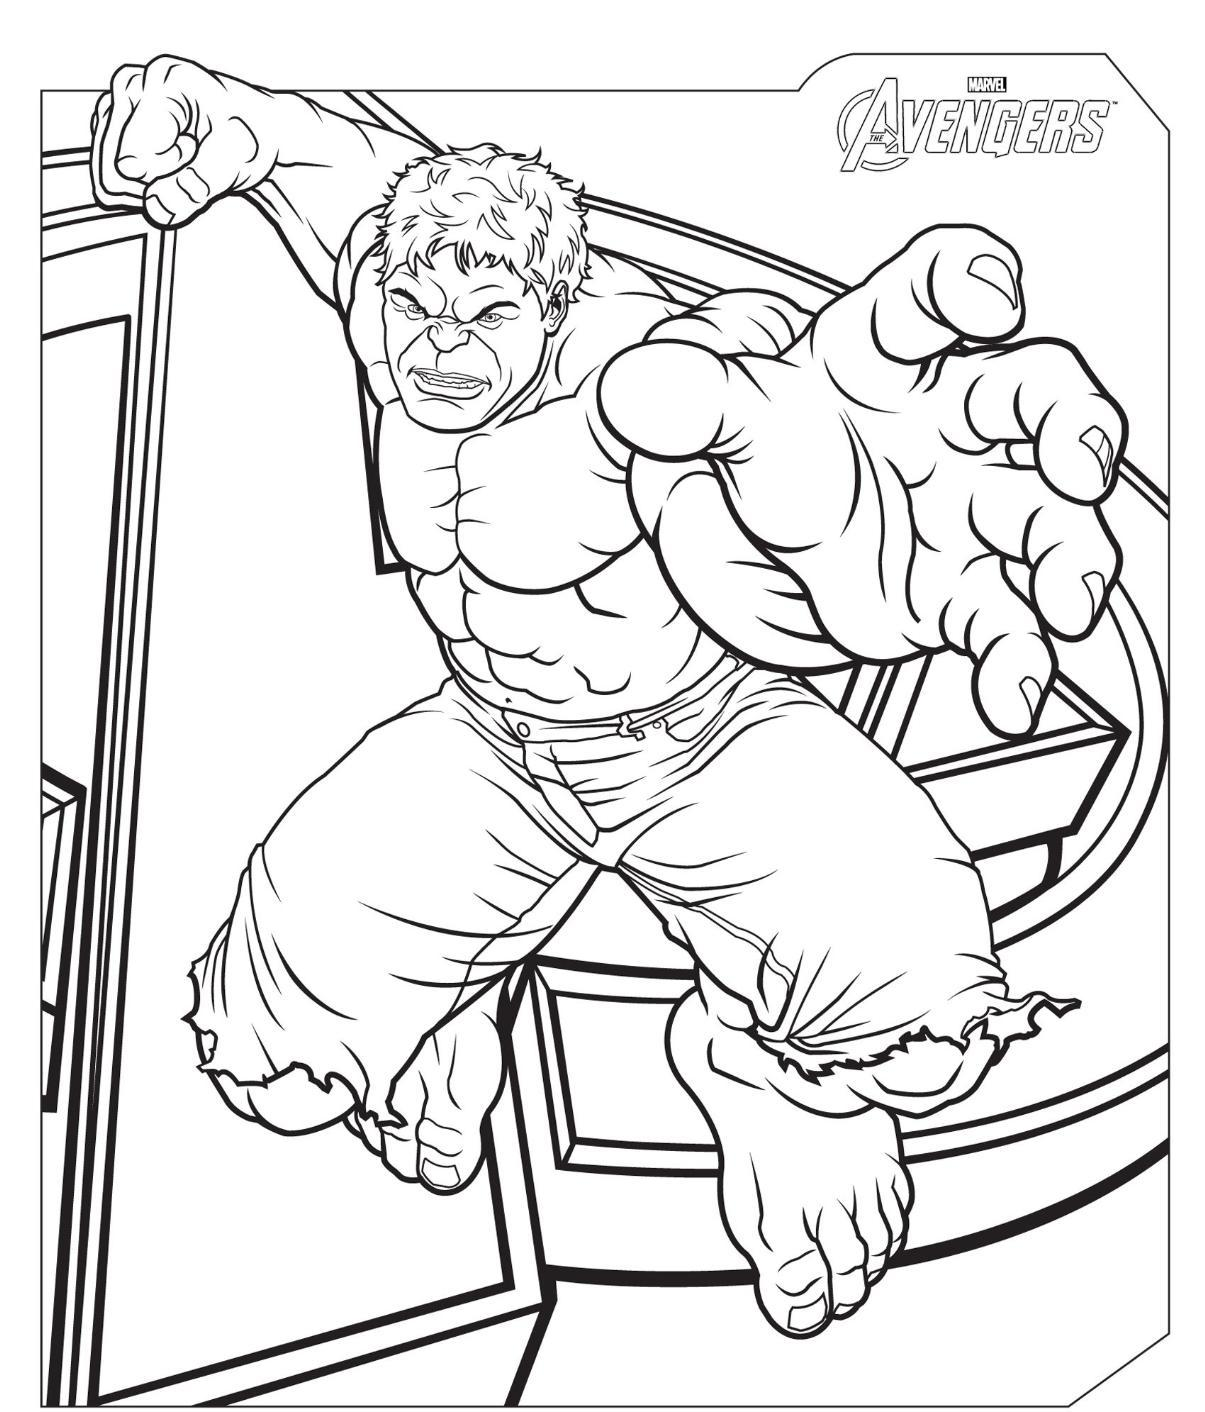 Avengers coloring pages to download and print for free